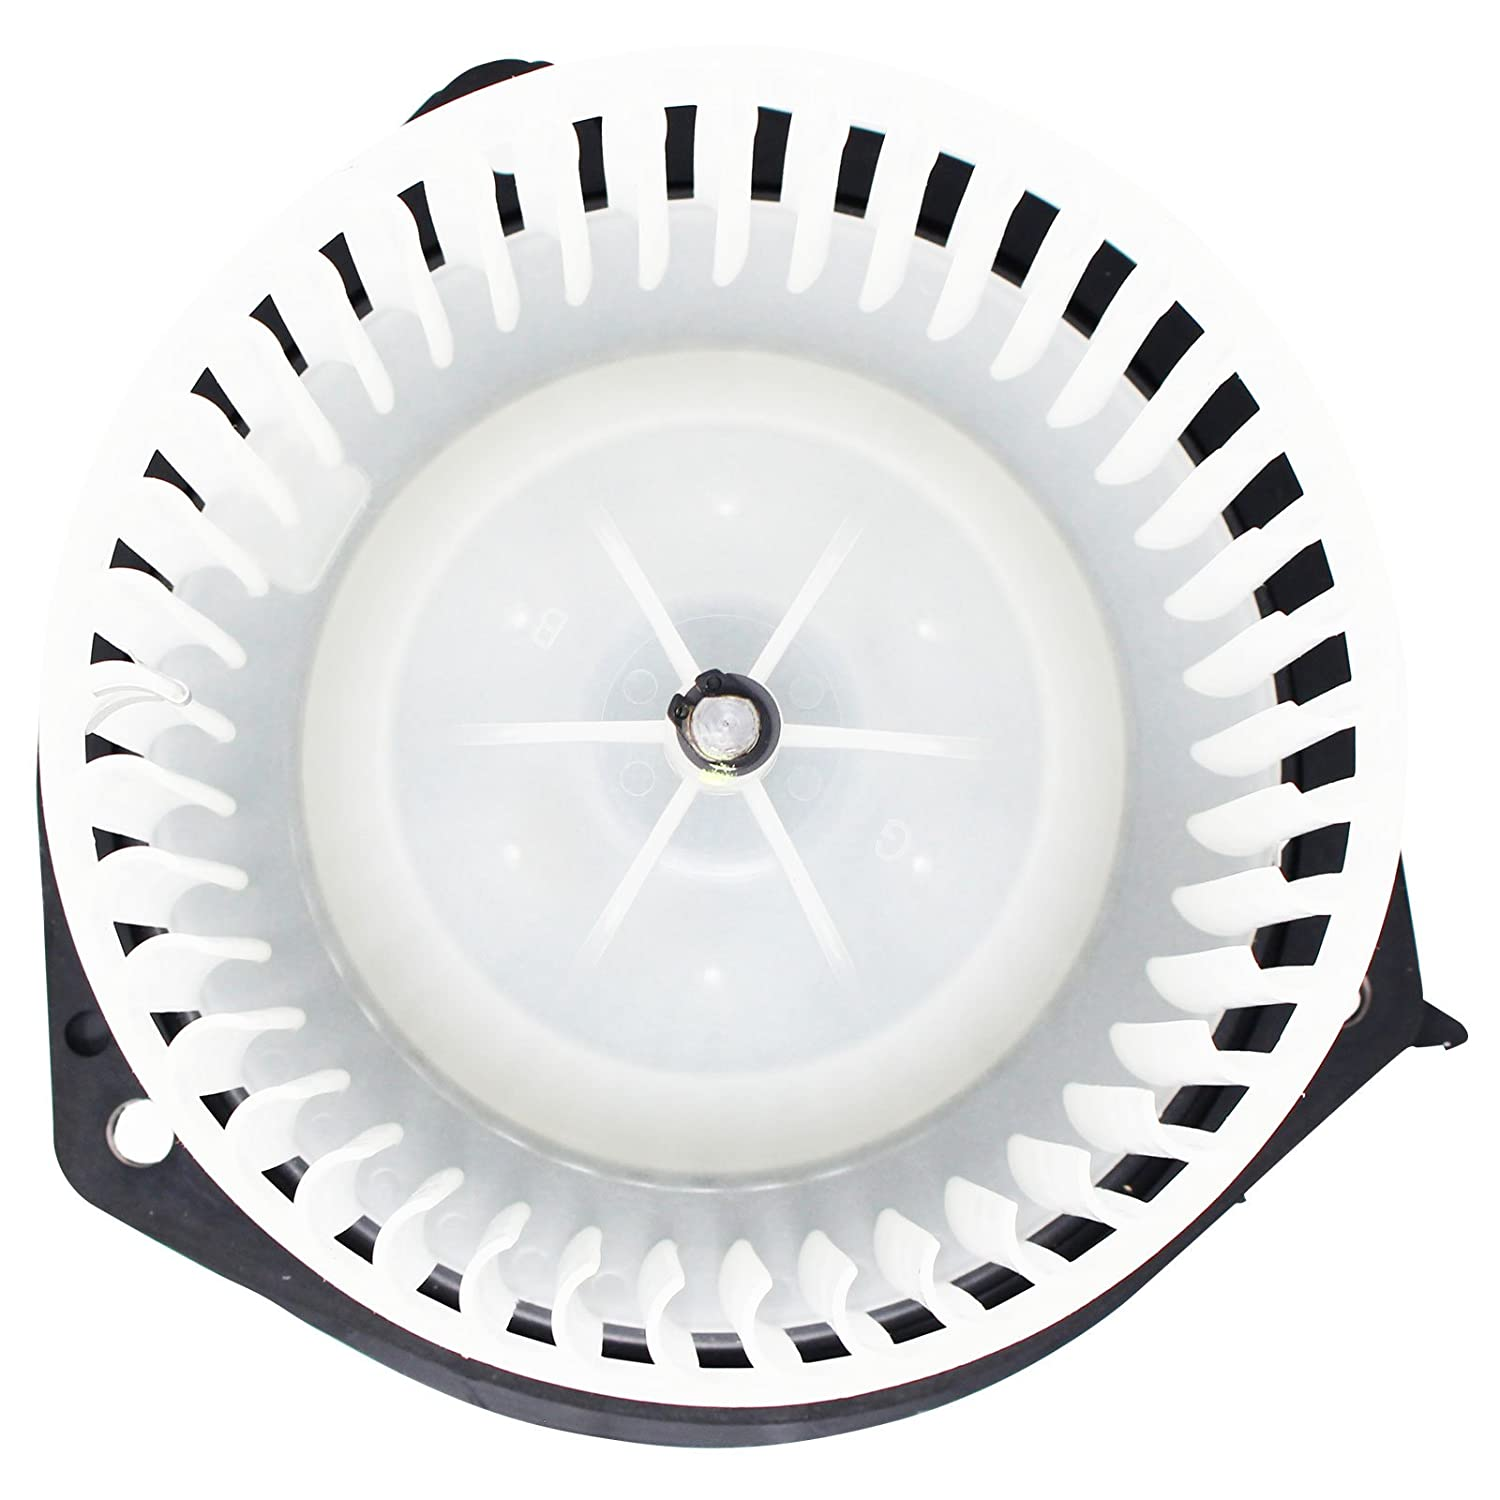 Replacement Blower Assembly for 2004 Cadillac DeVille DHS Sedan 4-Door 4.6L Compatible 89018521 Fan Motor Assembly